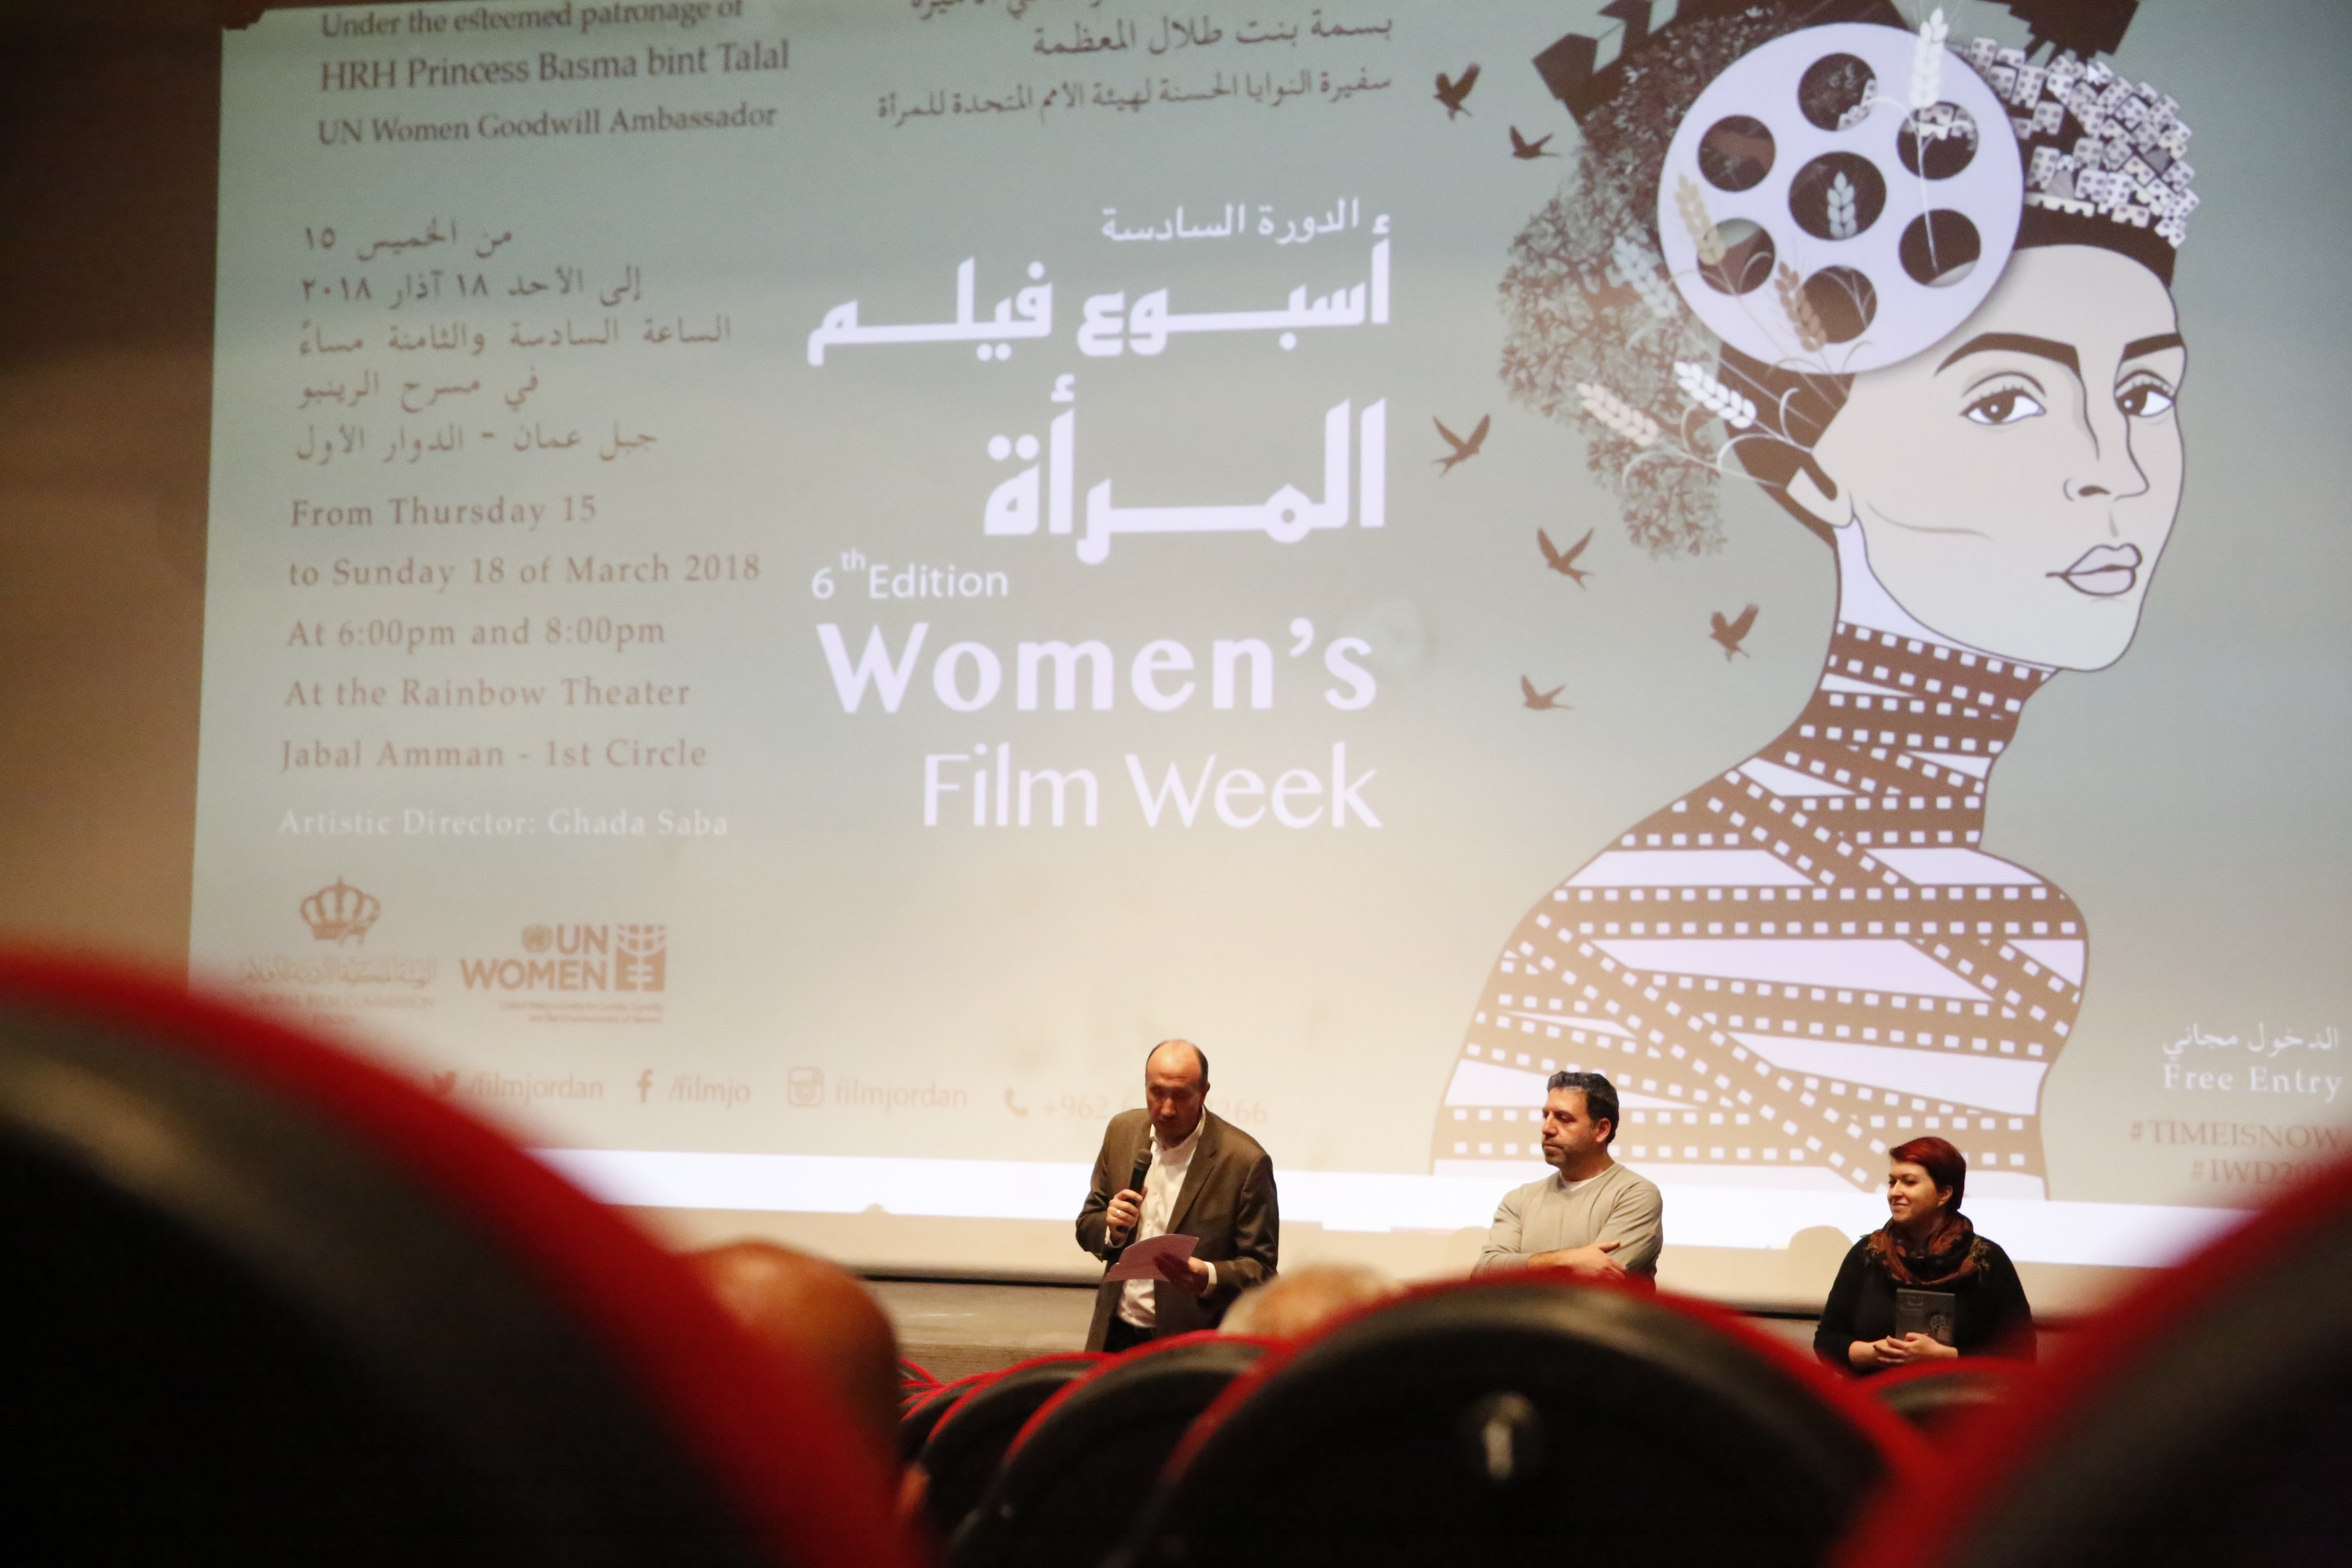 United Nations Entity for Gender Equality and Women's Empowerment (UN Women), in partnership with the Royal Film Commission, launched the 6th edition of the Women Film Week to mark International Women's Day under the global theme. UN Women have worked closely with various Embassies to attain films from across the Globe adhering to the theme, the American Embassy provided 'CodeGirl' for the screening, in which Cultural Affairs Attache Ali Lejlic presents the screening.